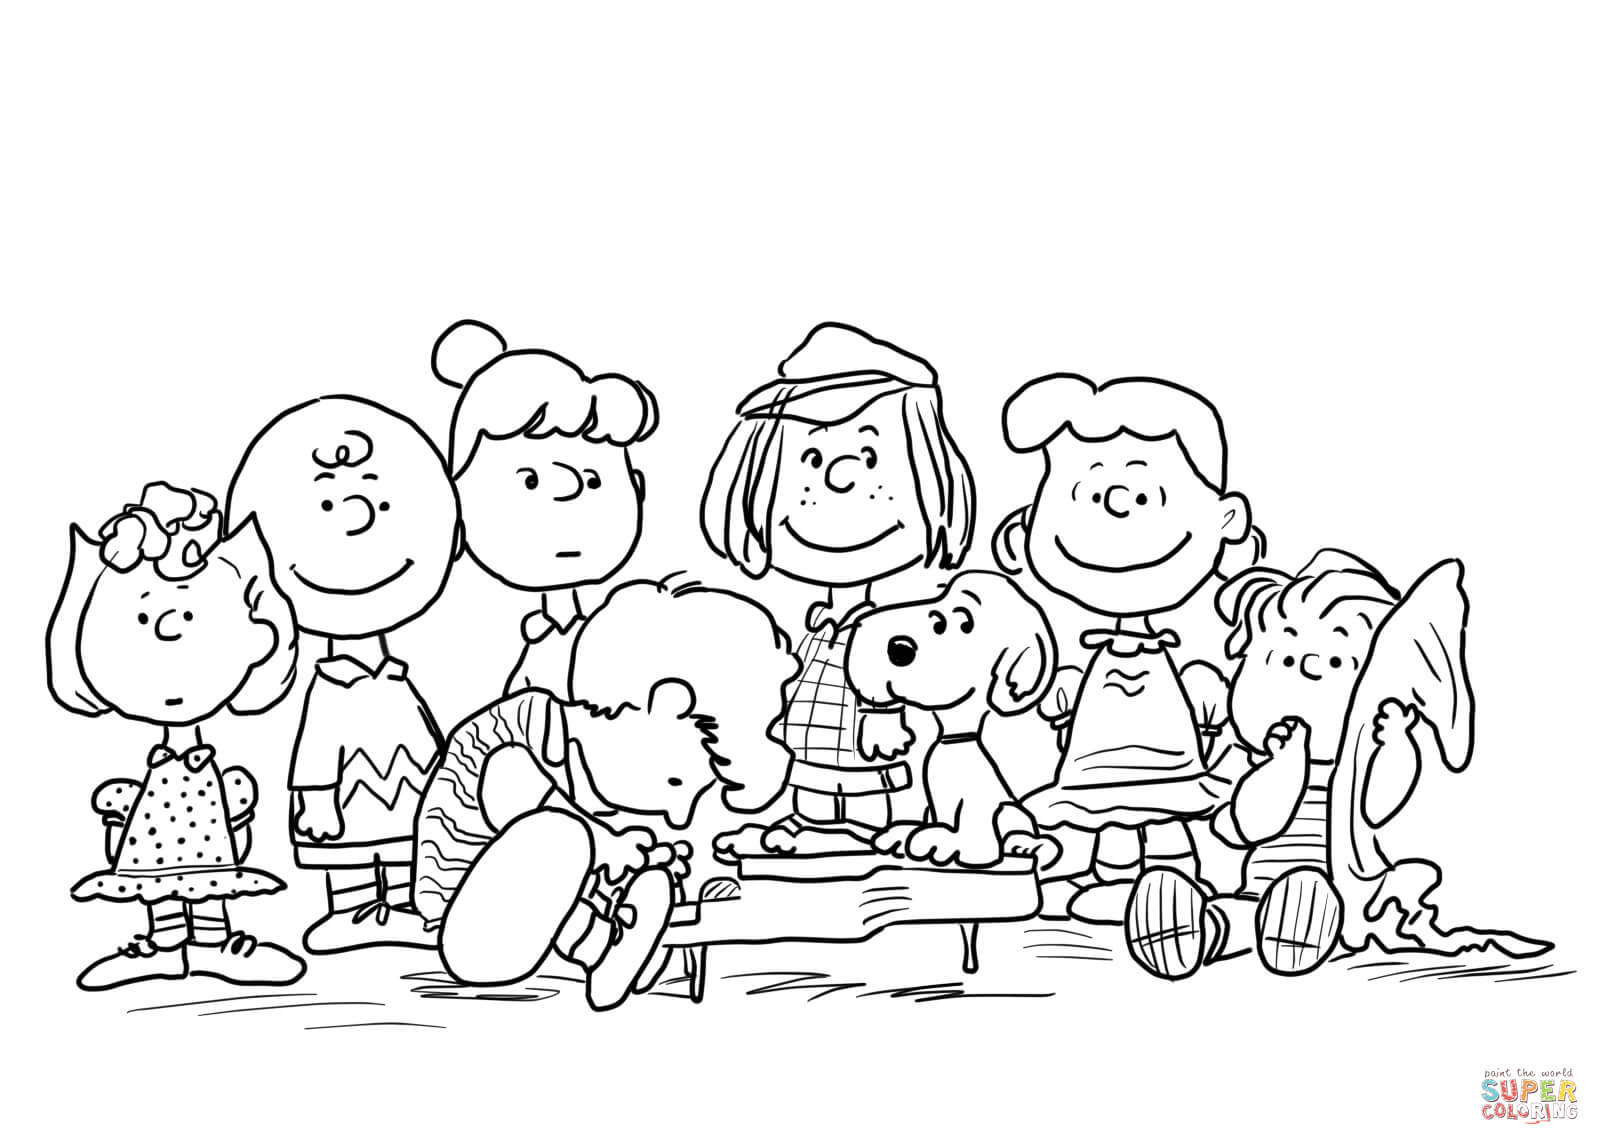 peanuts characters coloring pages peanuts characters thanksgiving coloring pages coloring home peanuts characters coloring pages